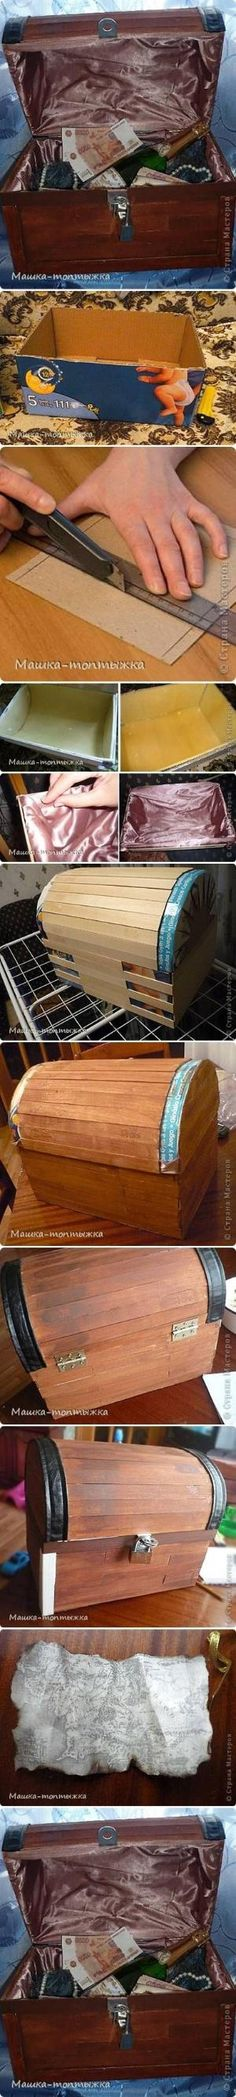 DIY Cardboard Treasure Box by Ryanafavs